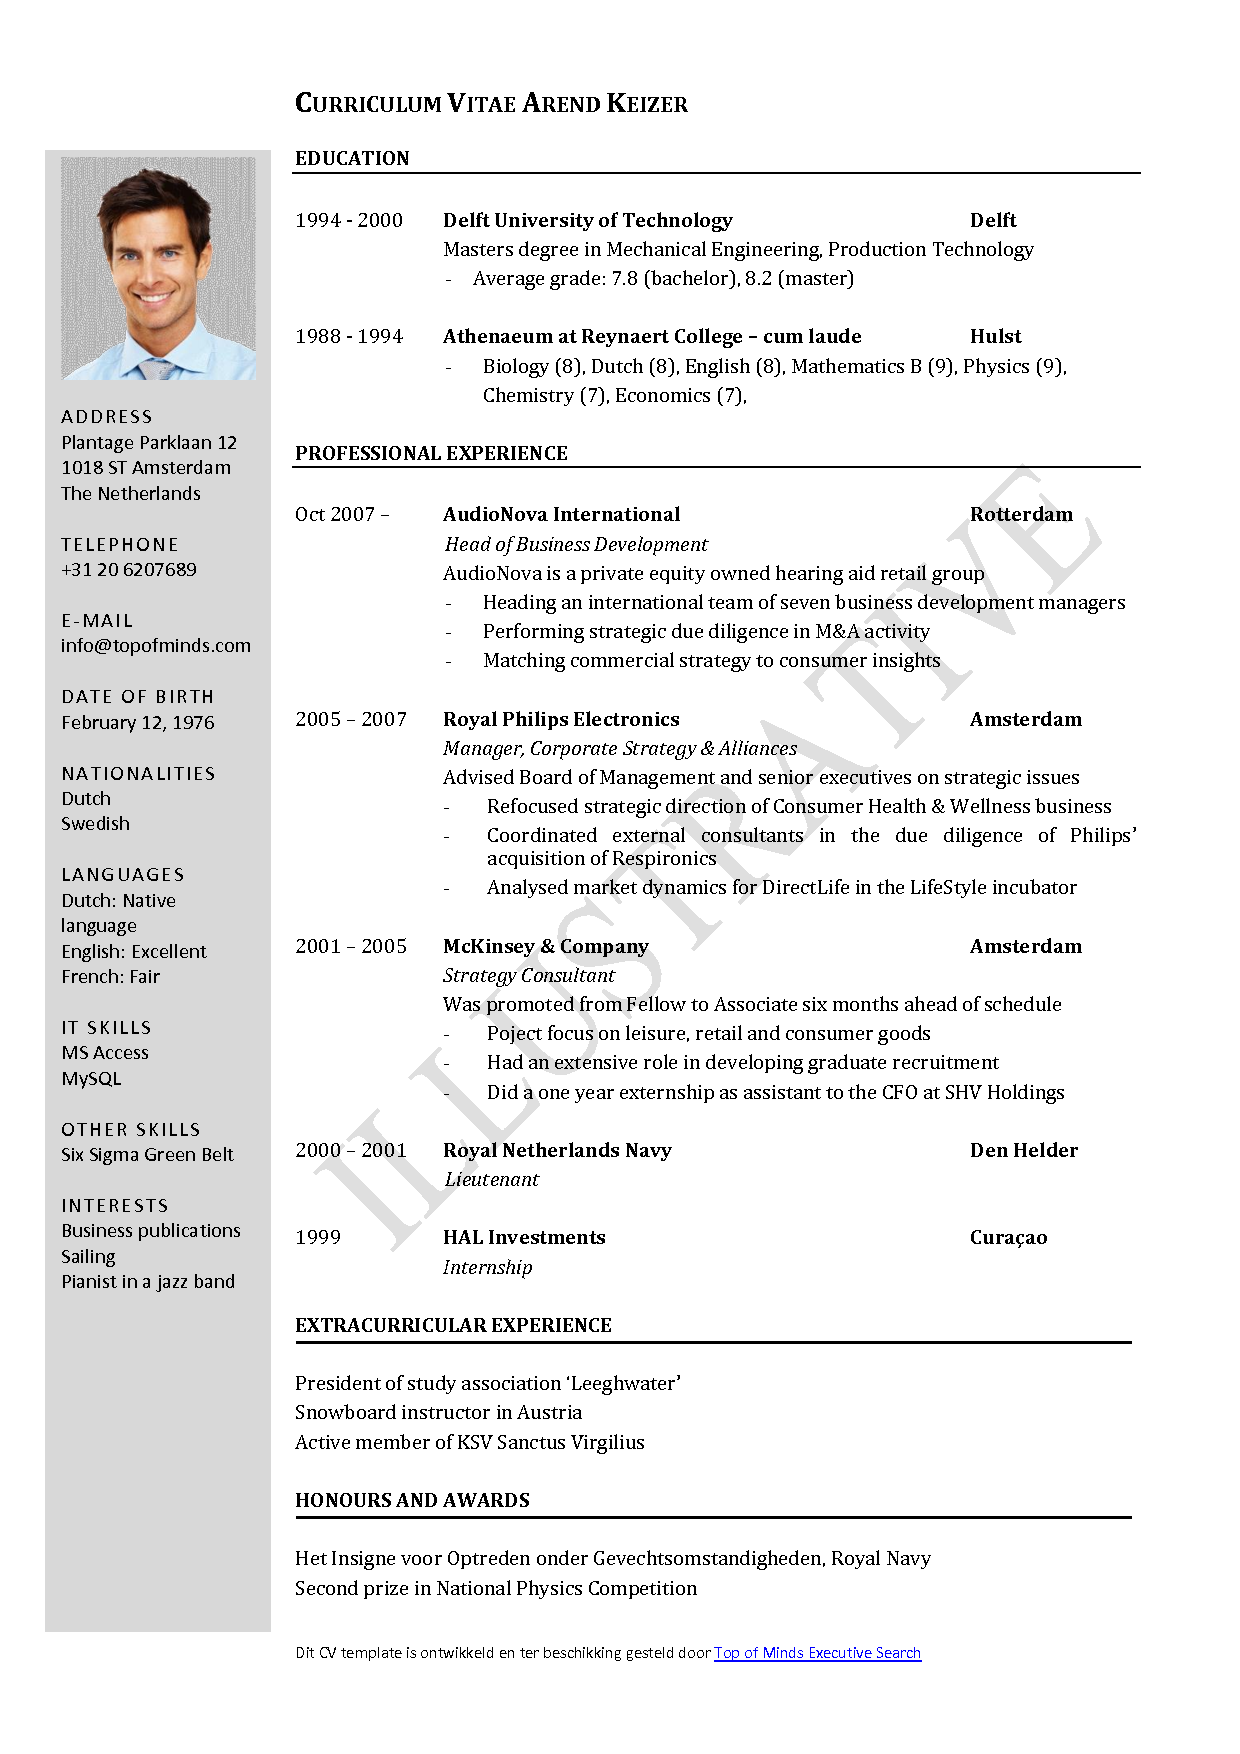 Free Curriculum Vitae Template Word | Download CV Template Idea Resume Templates Downloads